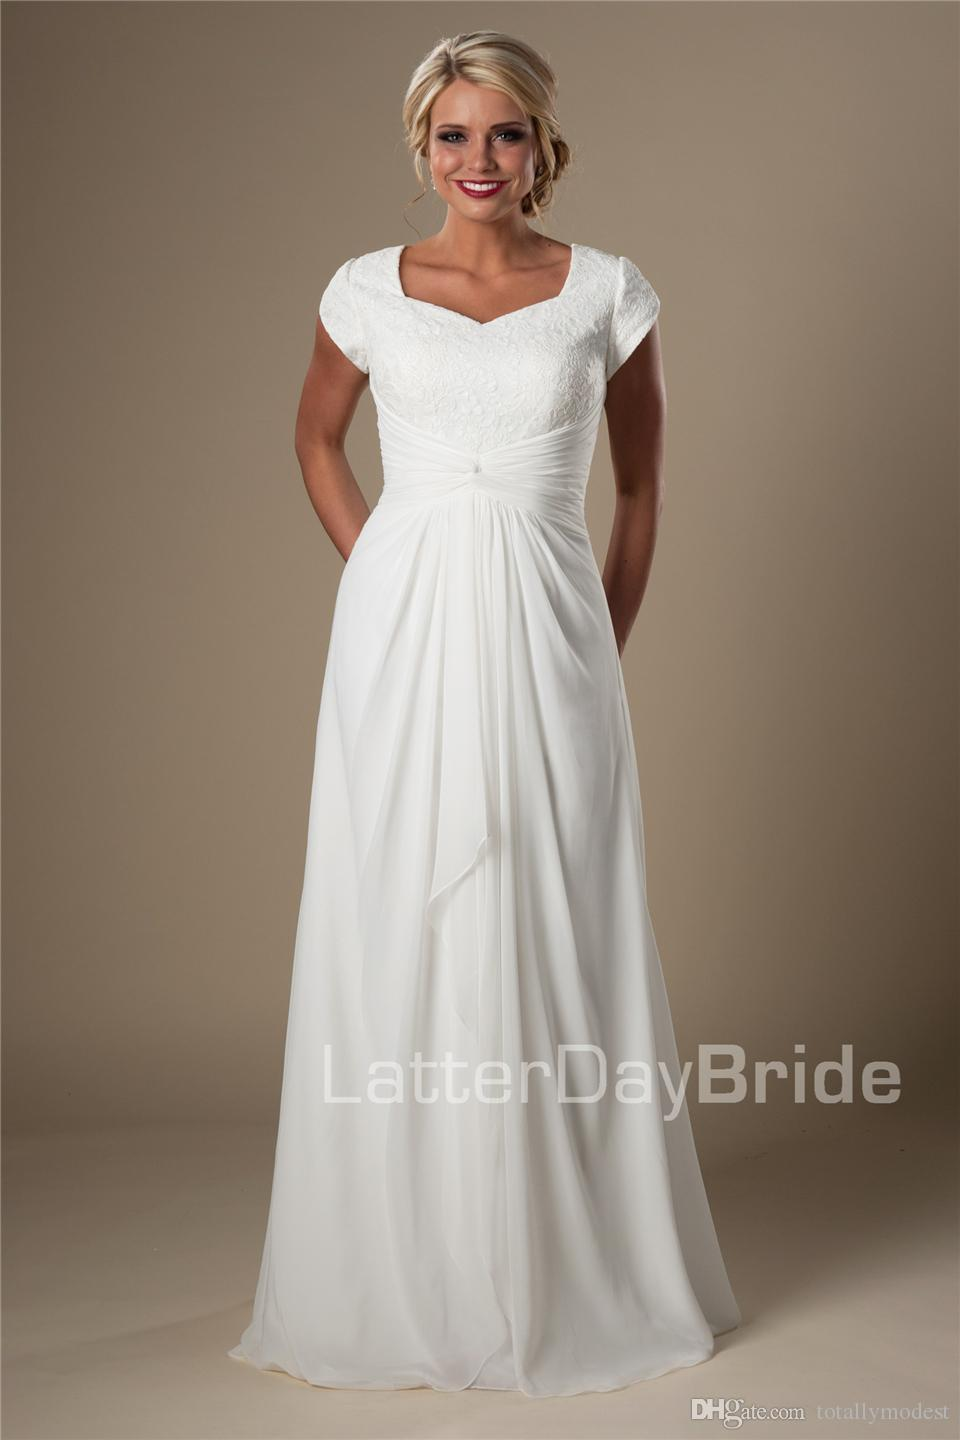 Ivory Lace Chiffon Beach Modest Wedding Dresses With Cap Sleeves Long A-line Bridal Gowns Informal Destination Wedding Gowns New Sale